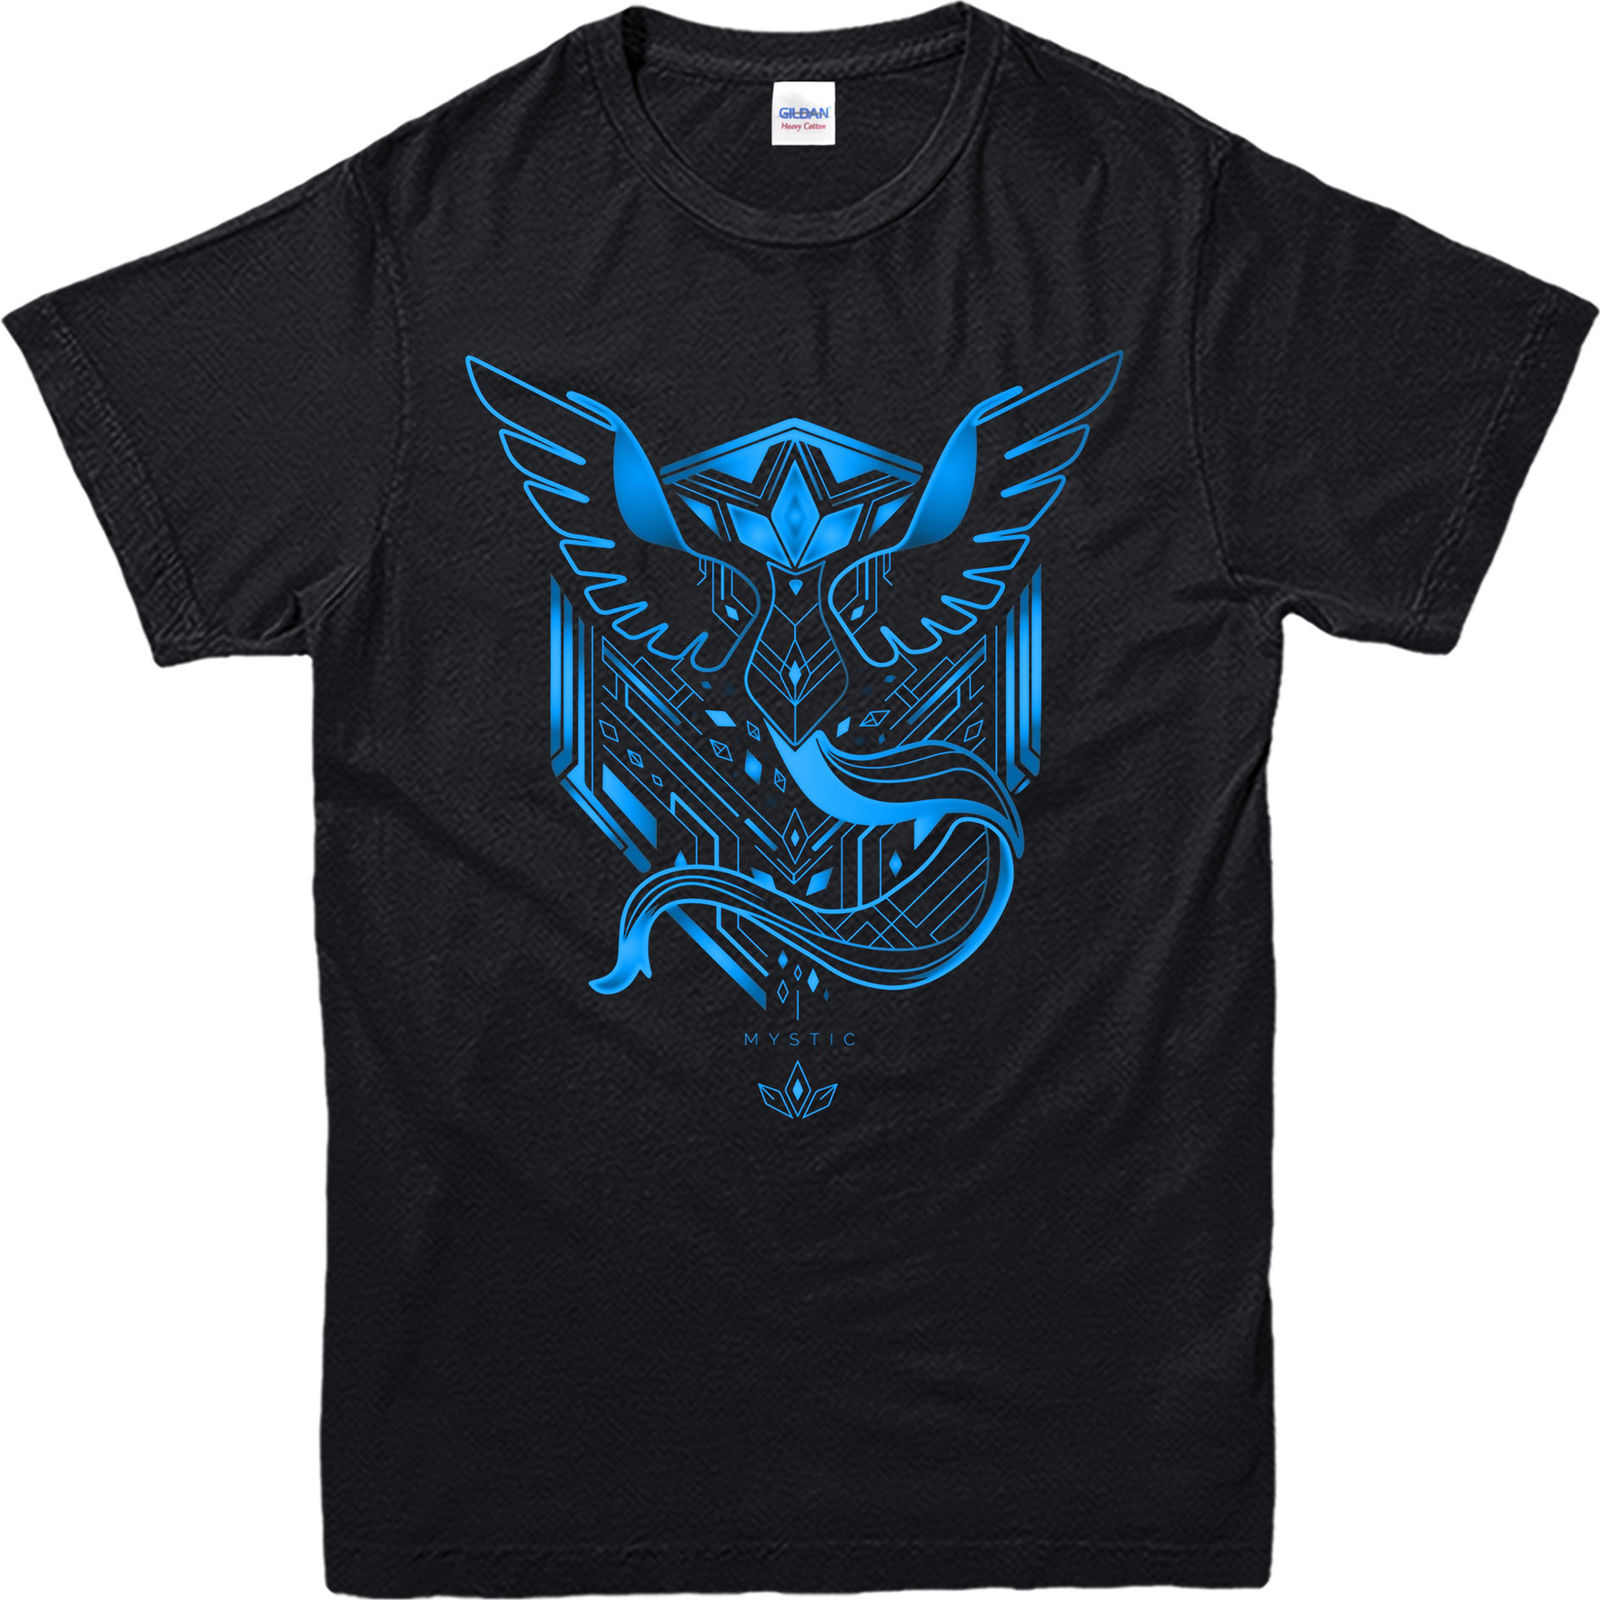 0e3dff1e Pokemon Go T-Shirt,Pokemon Team Mystic Pattern T-Shirt, Inspired Design